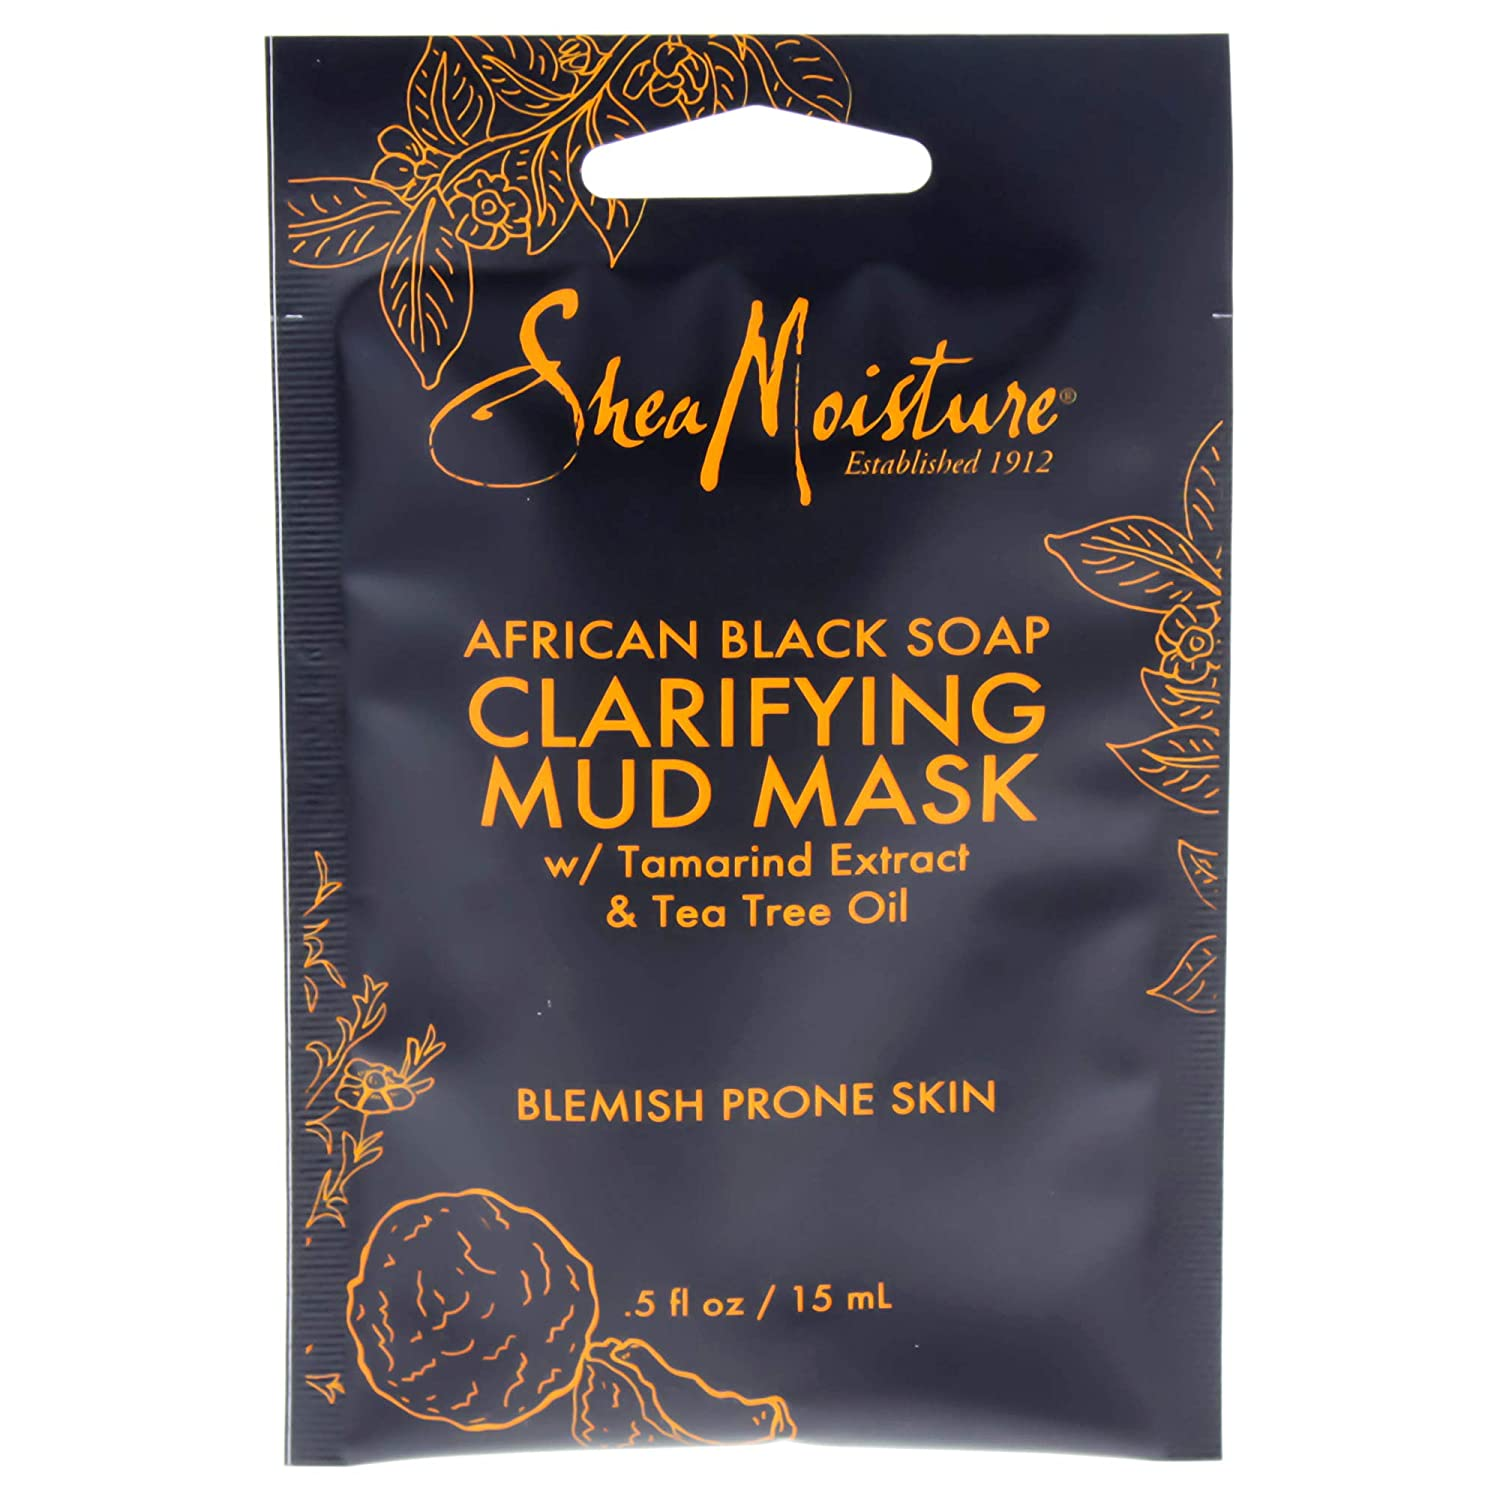 Shea Moisture African black soap clarifying mud mask by shea moisture for unisex mask, 0.5 Ounce PerfumeWorldWide Inc. U-SC-4833